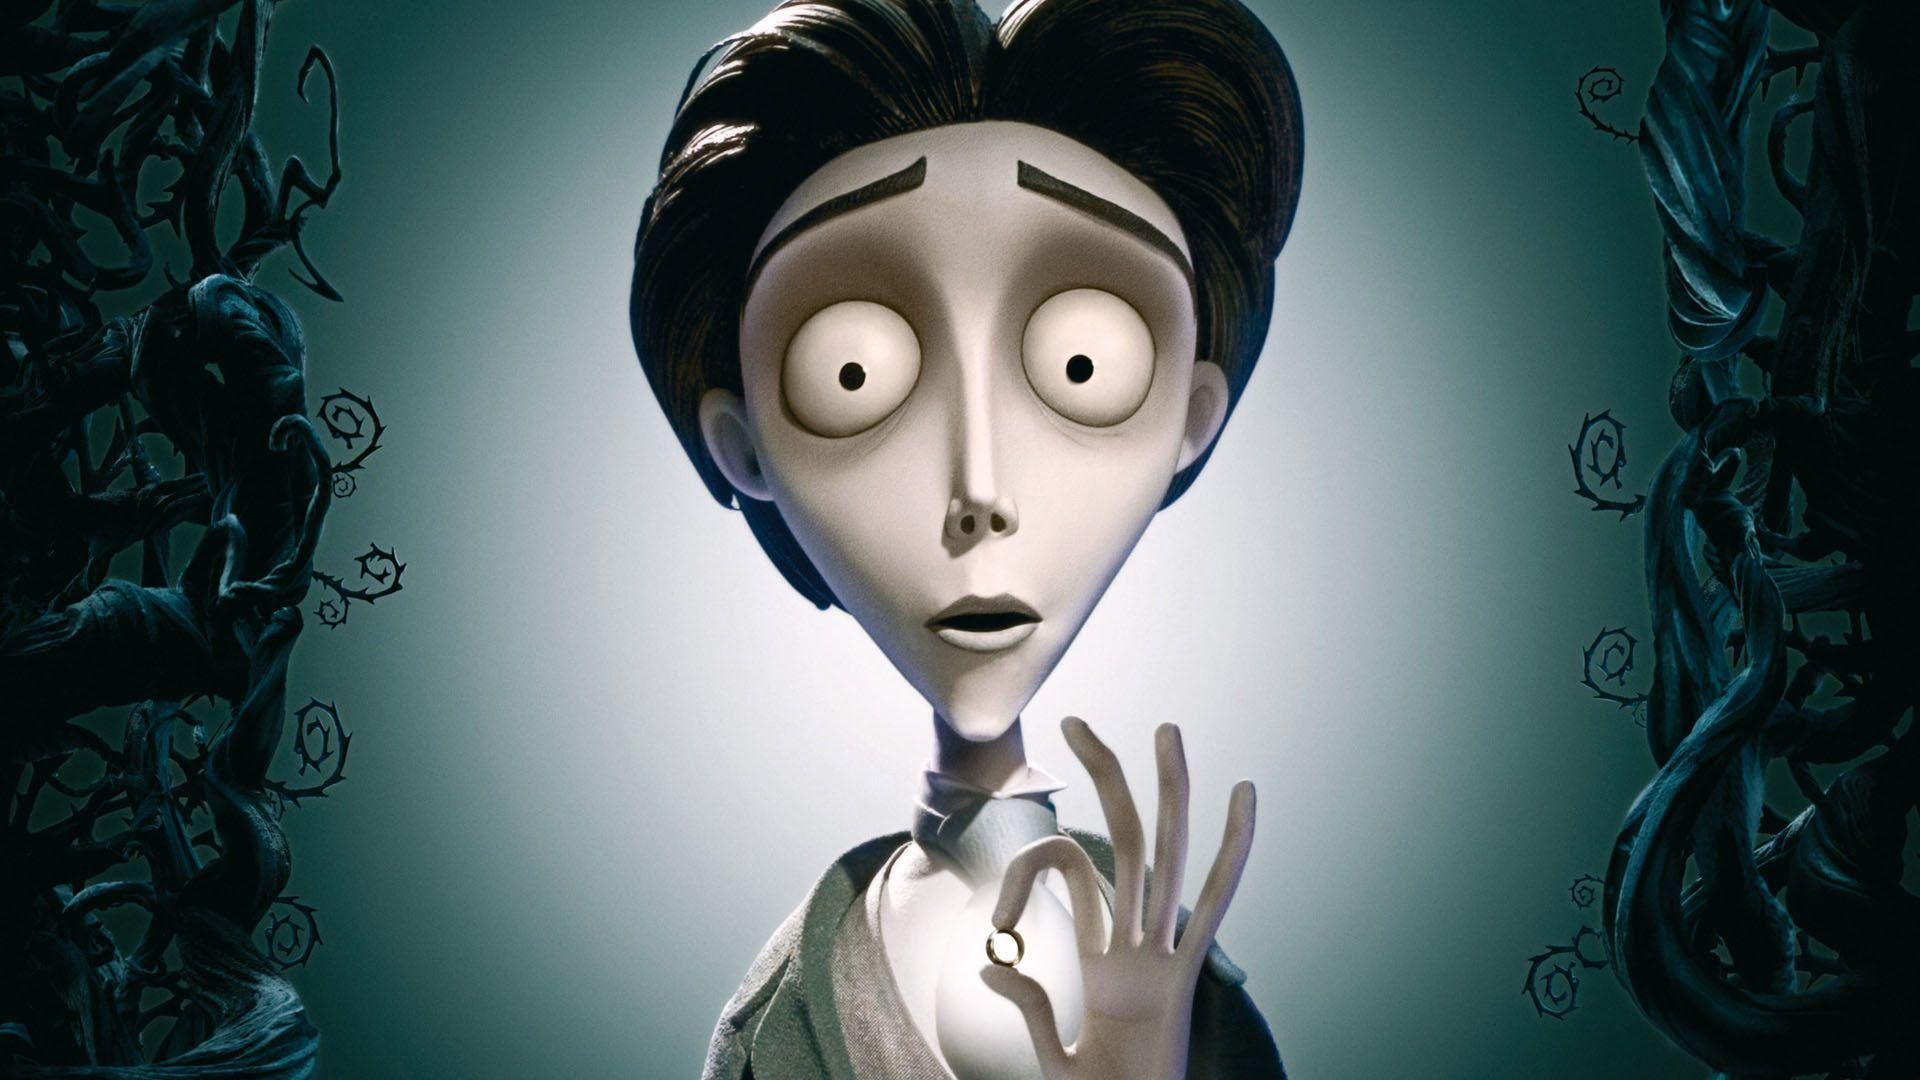 corpse bride movie wallpapers - photo #14